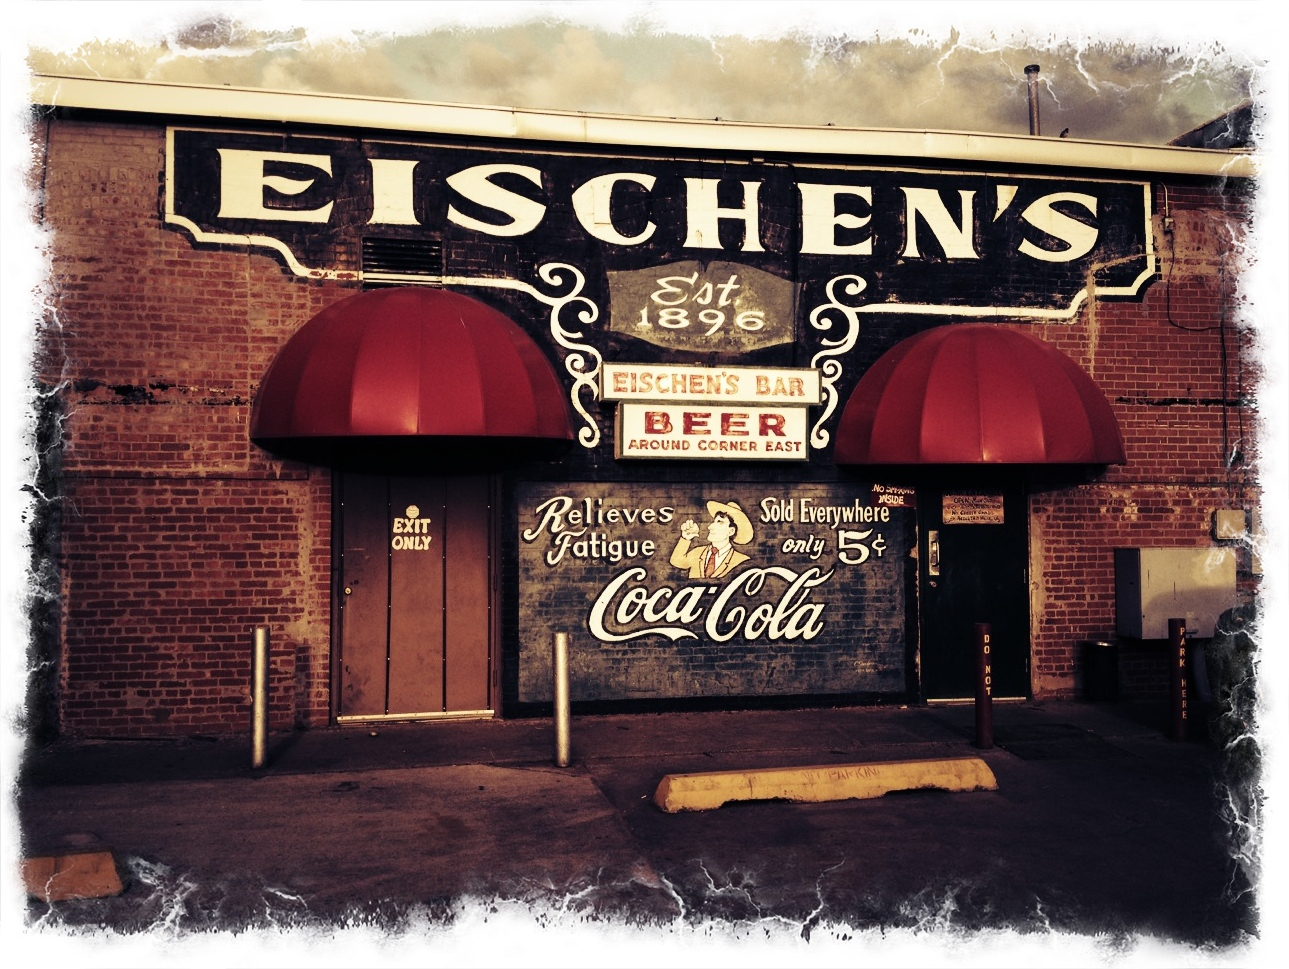 Eischen's Bar Oldest in Oklahoma